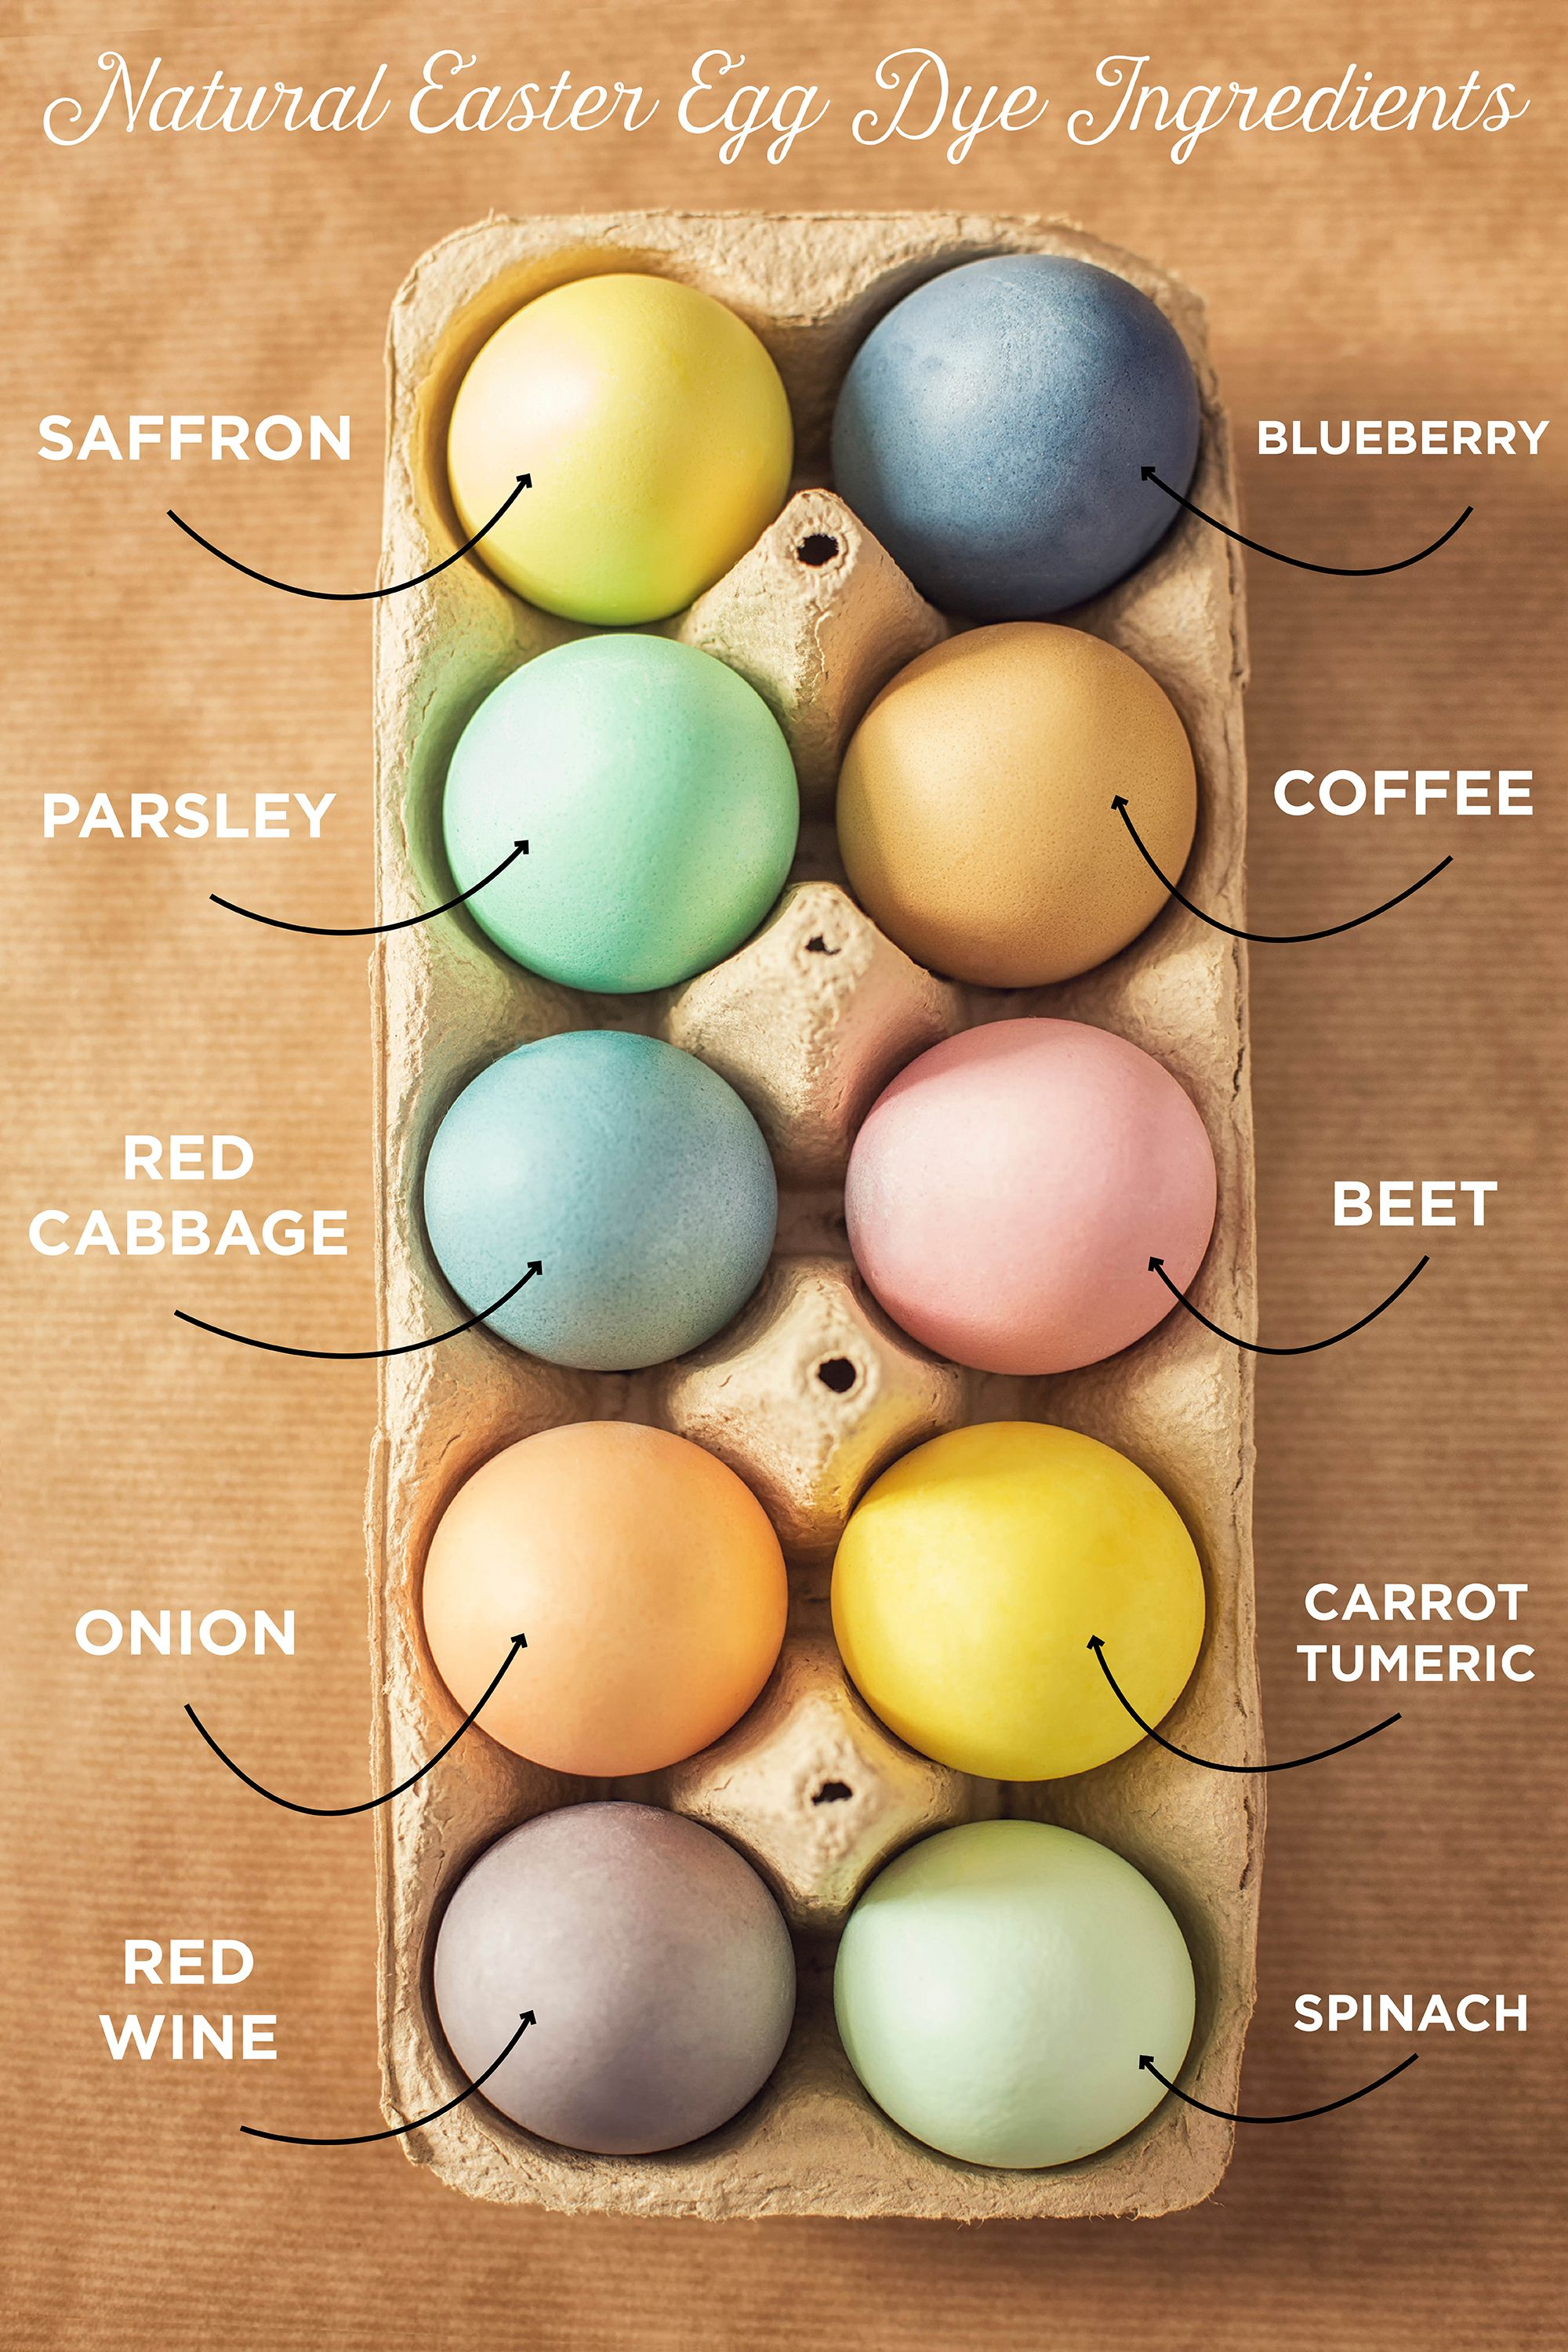 natural easter egg dye ingredients